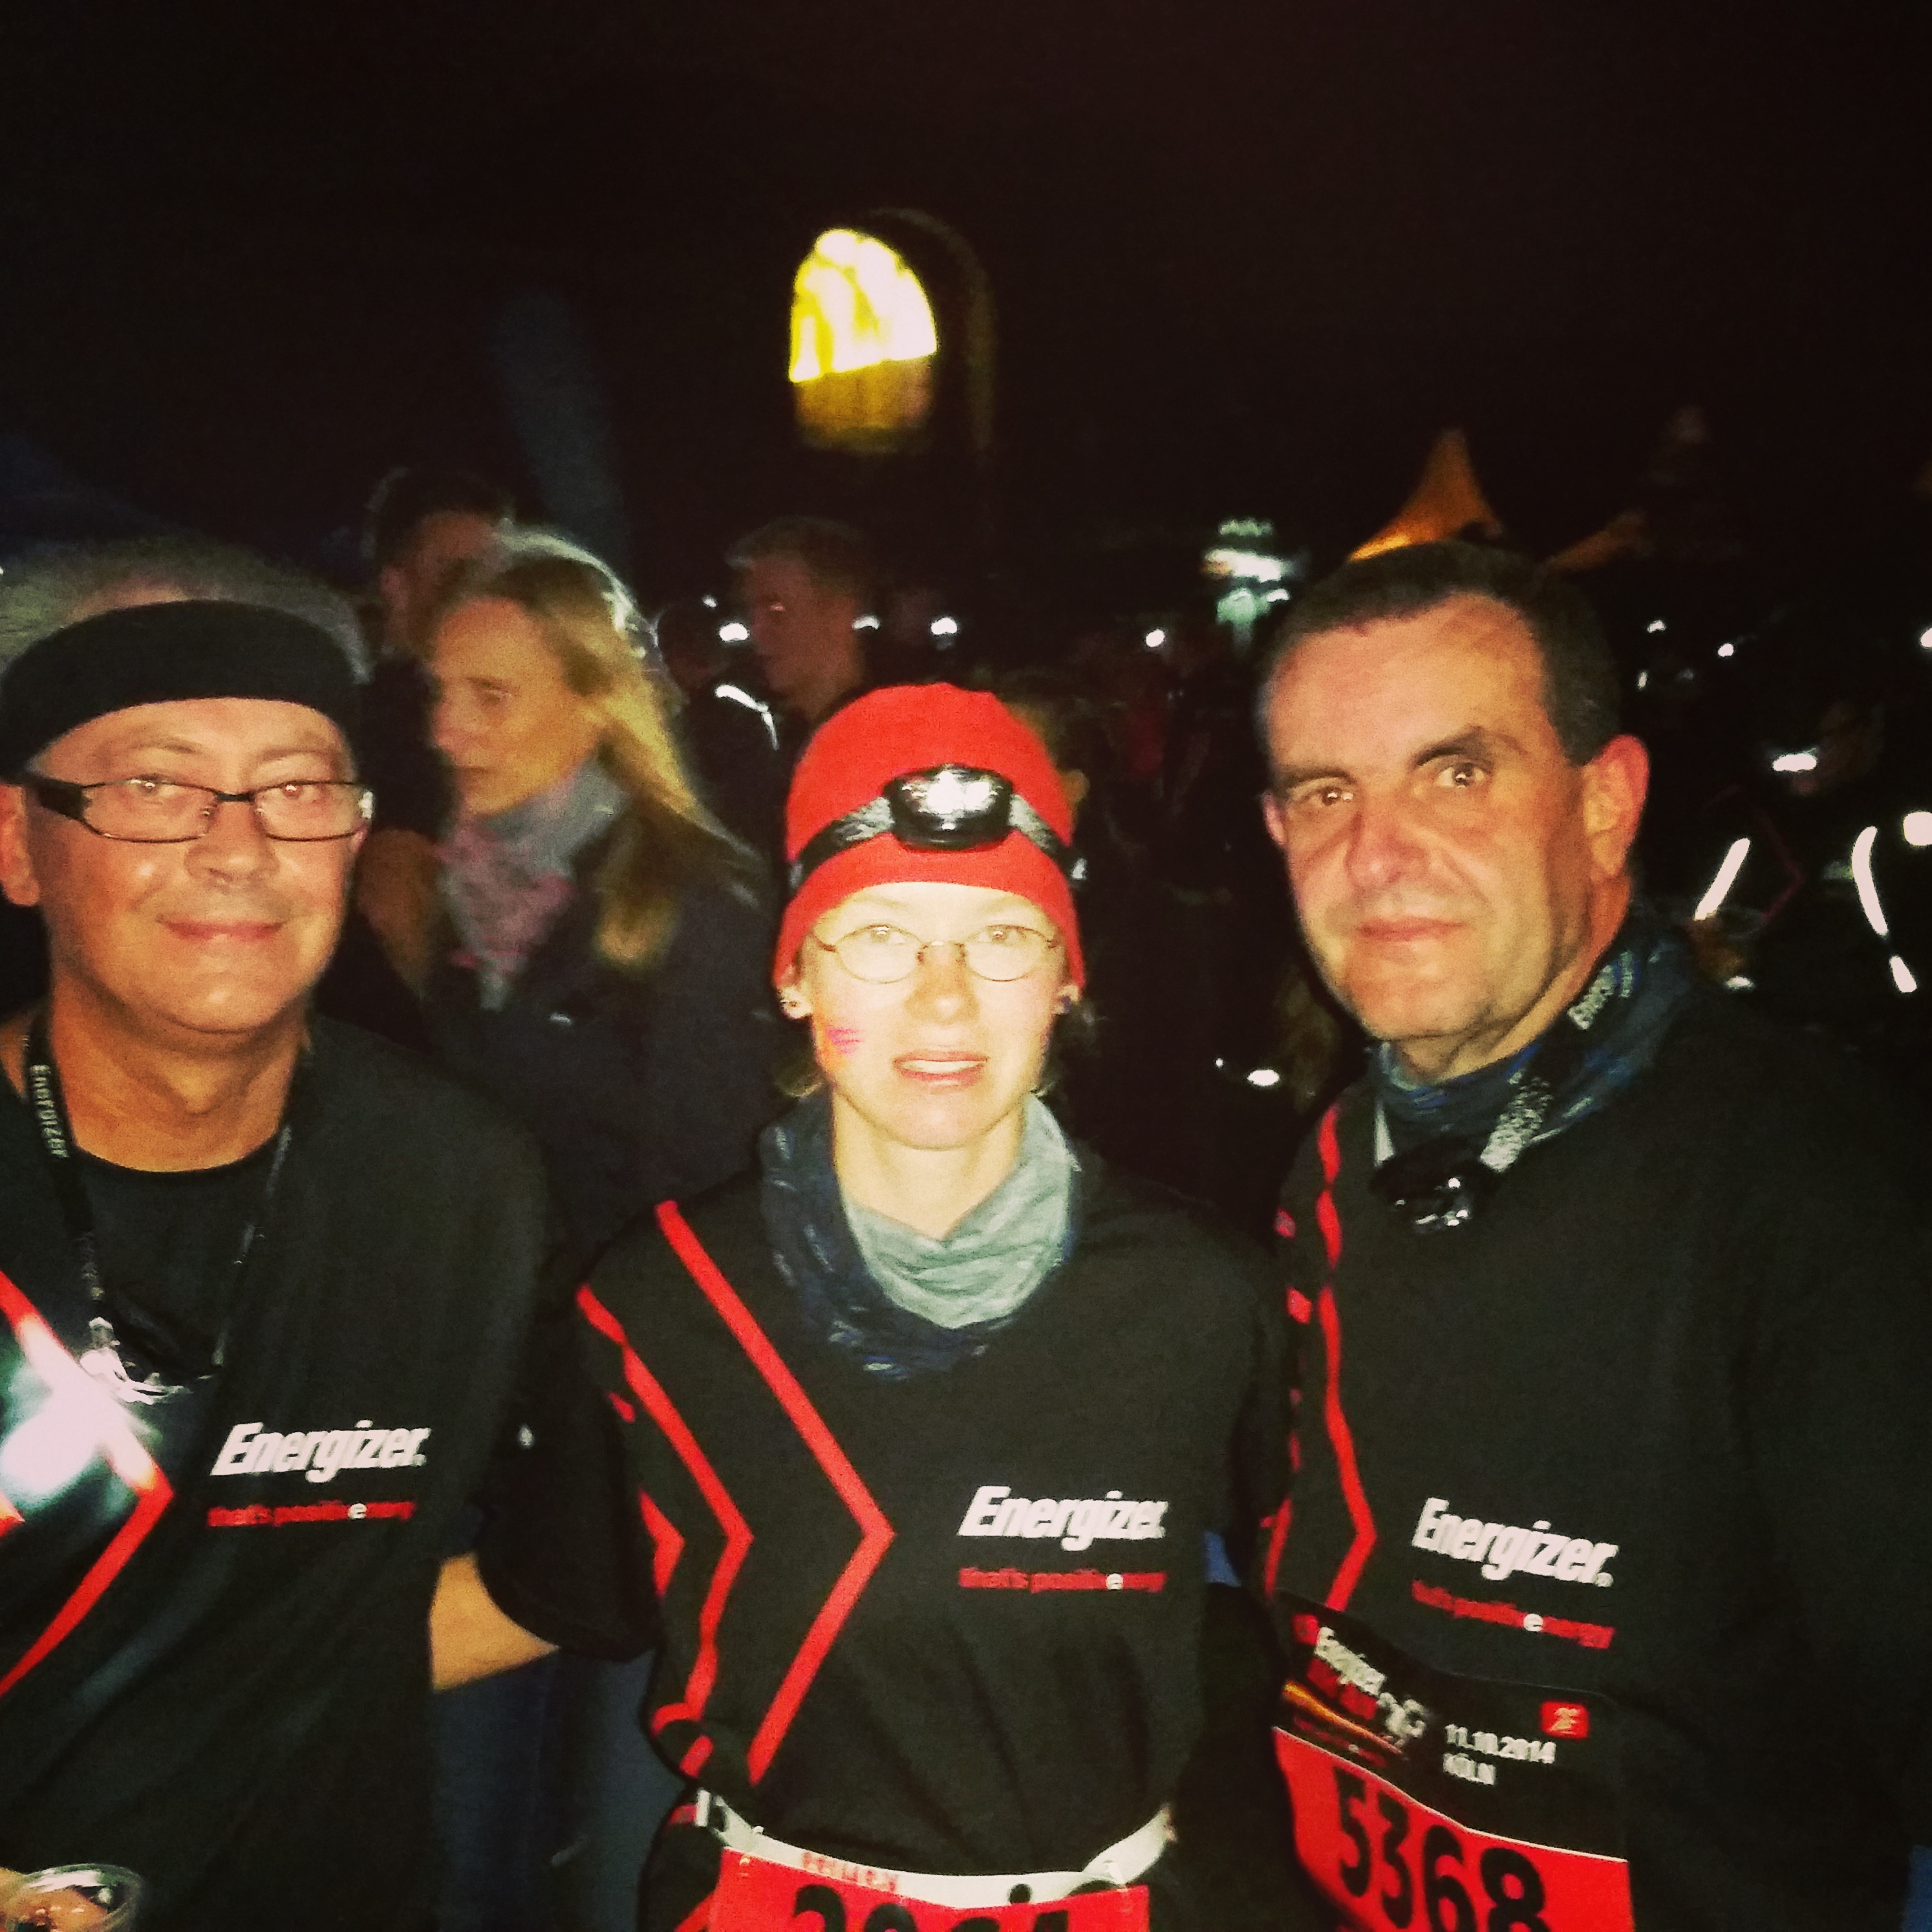 energizer night run koln 2014